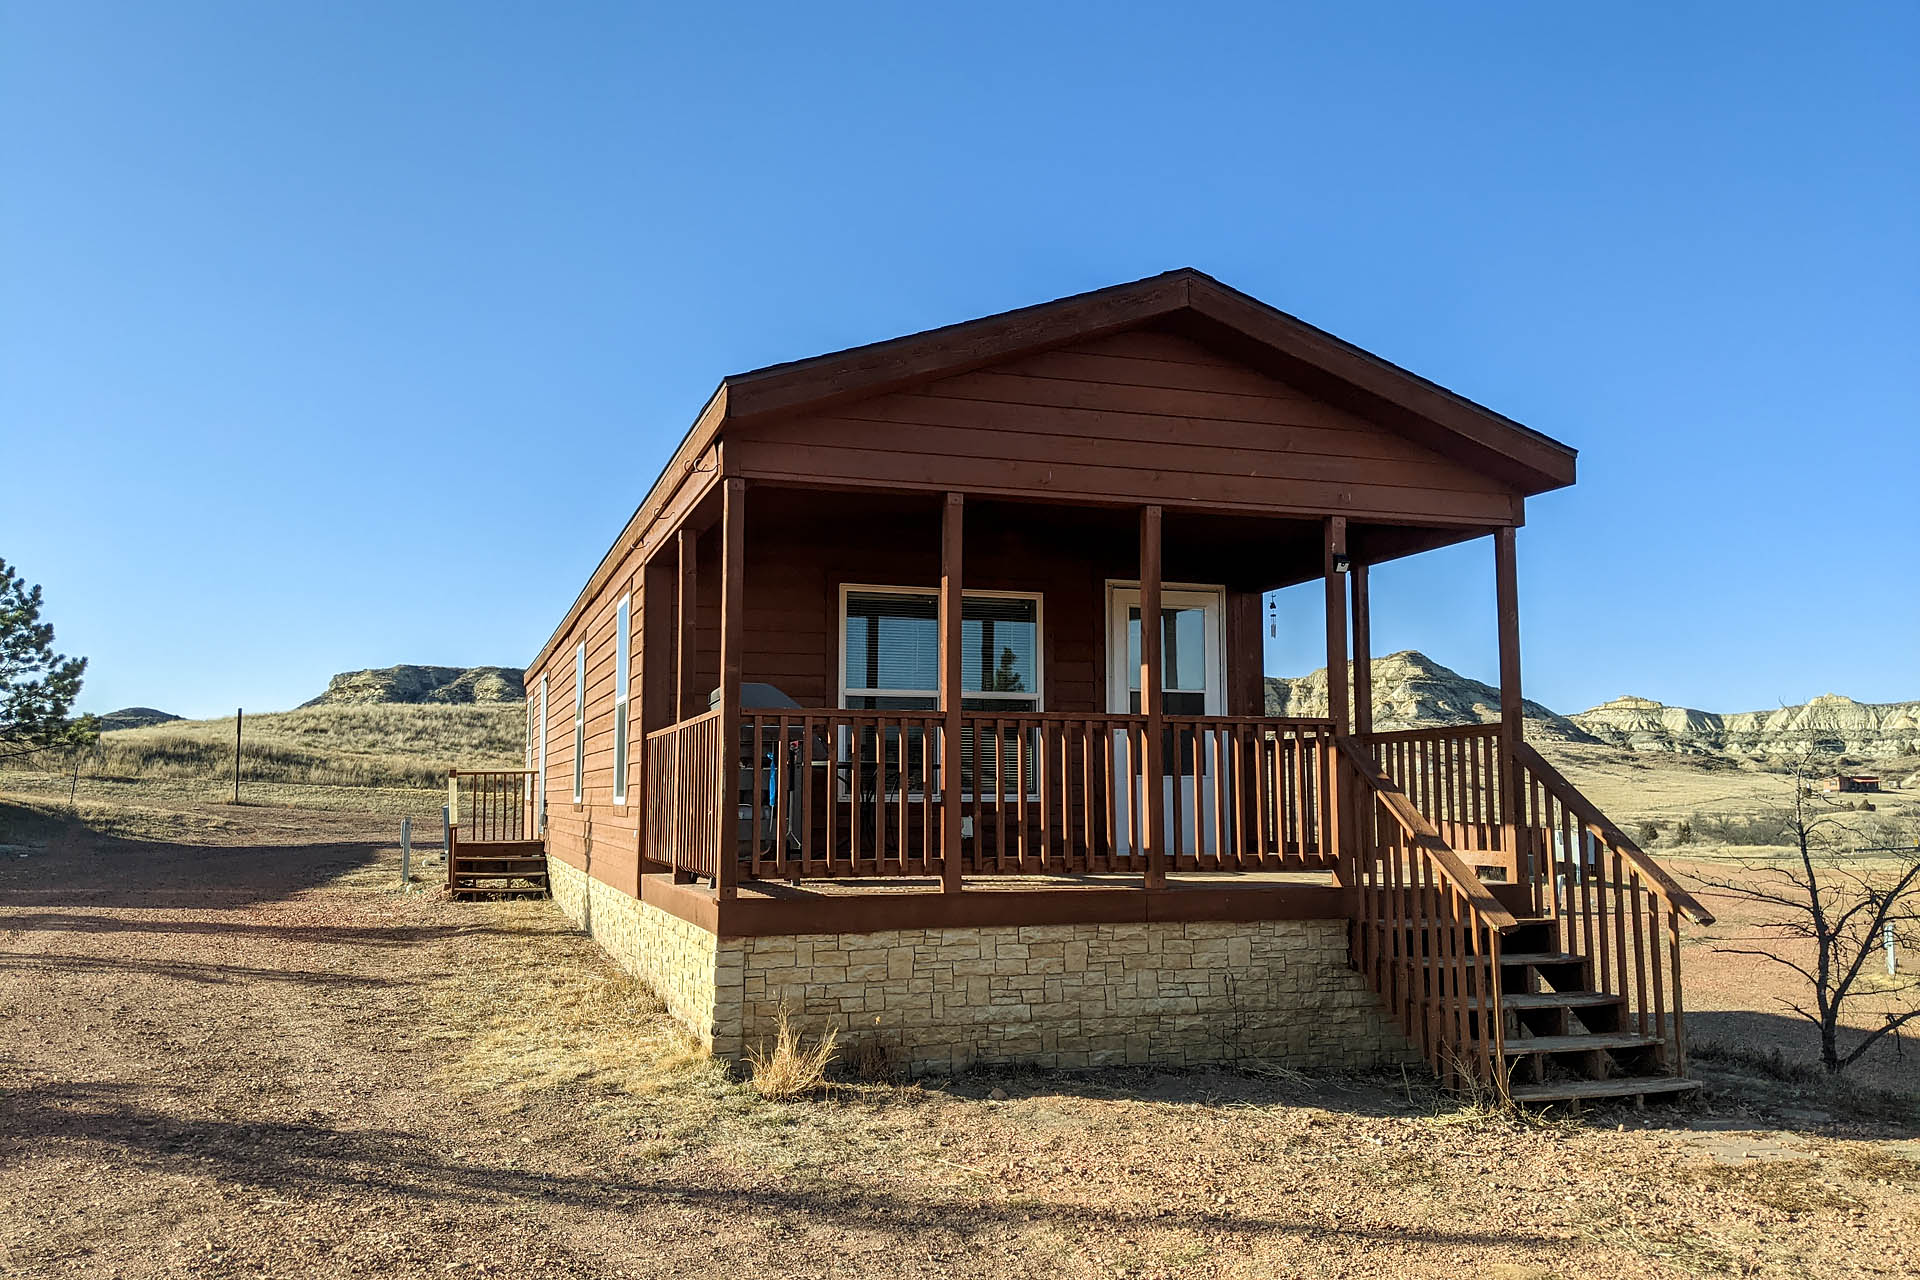 Cowboy cabin, Boots Campground